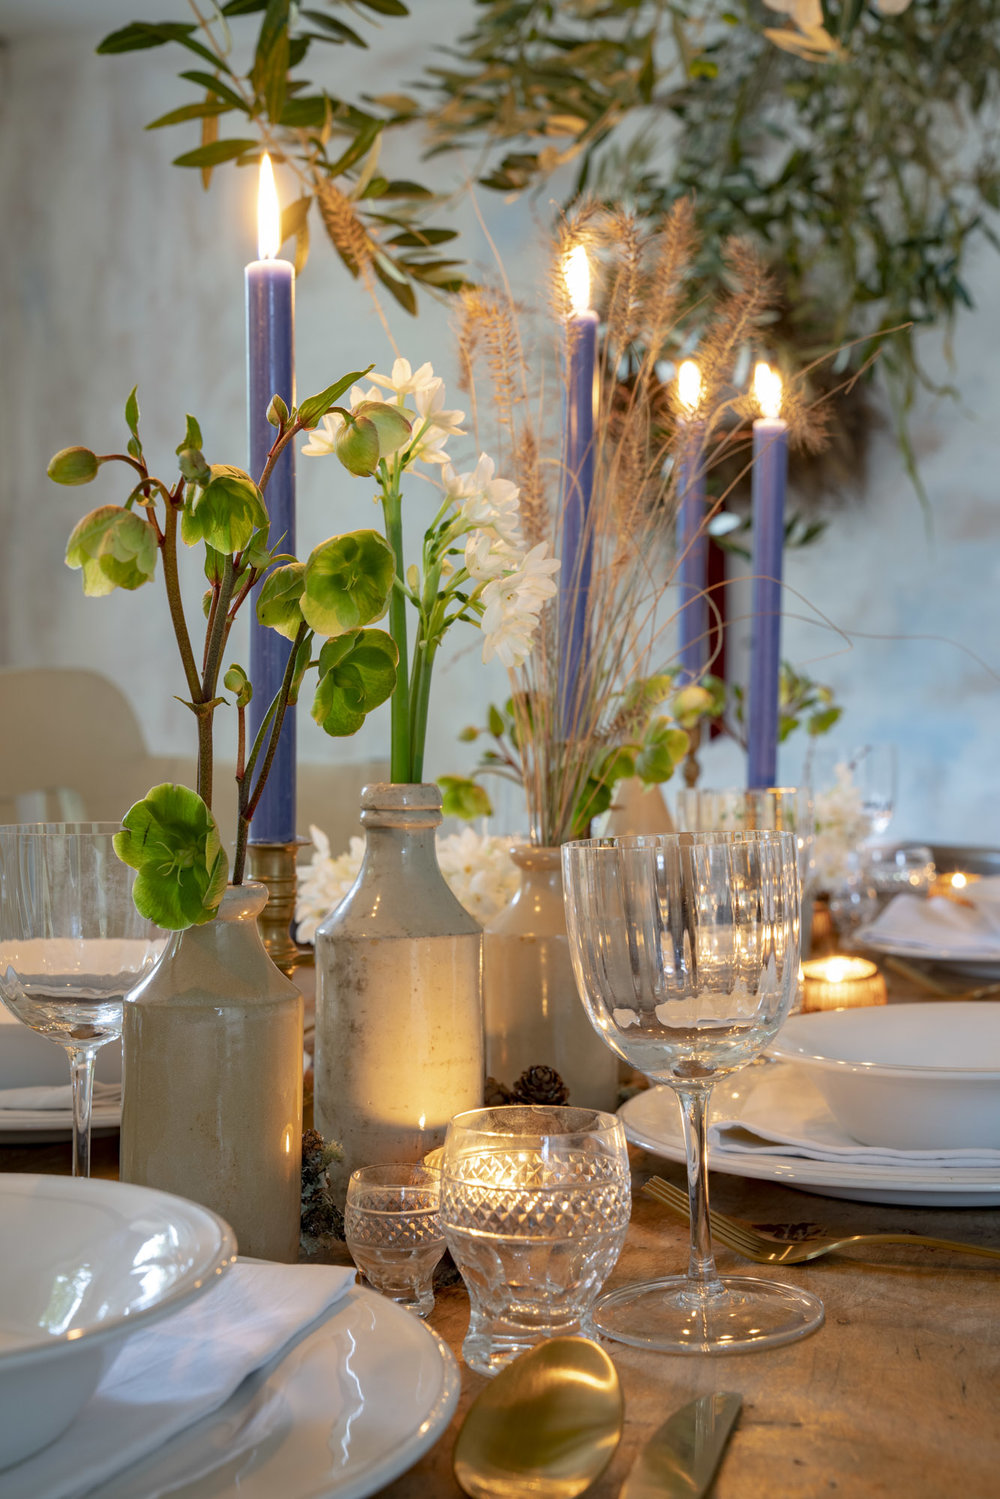 IMG_0884.jpgFlorals - Moss & Stone Floral Design | Image - Andrew Crowley | Journalist - Clare  Coulson for The Telegraph